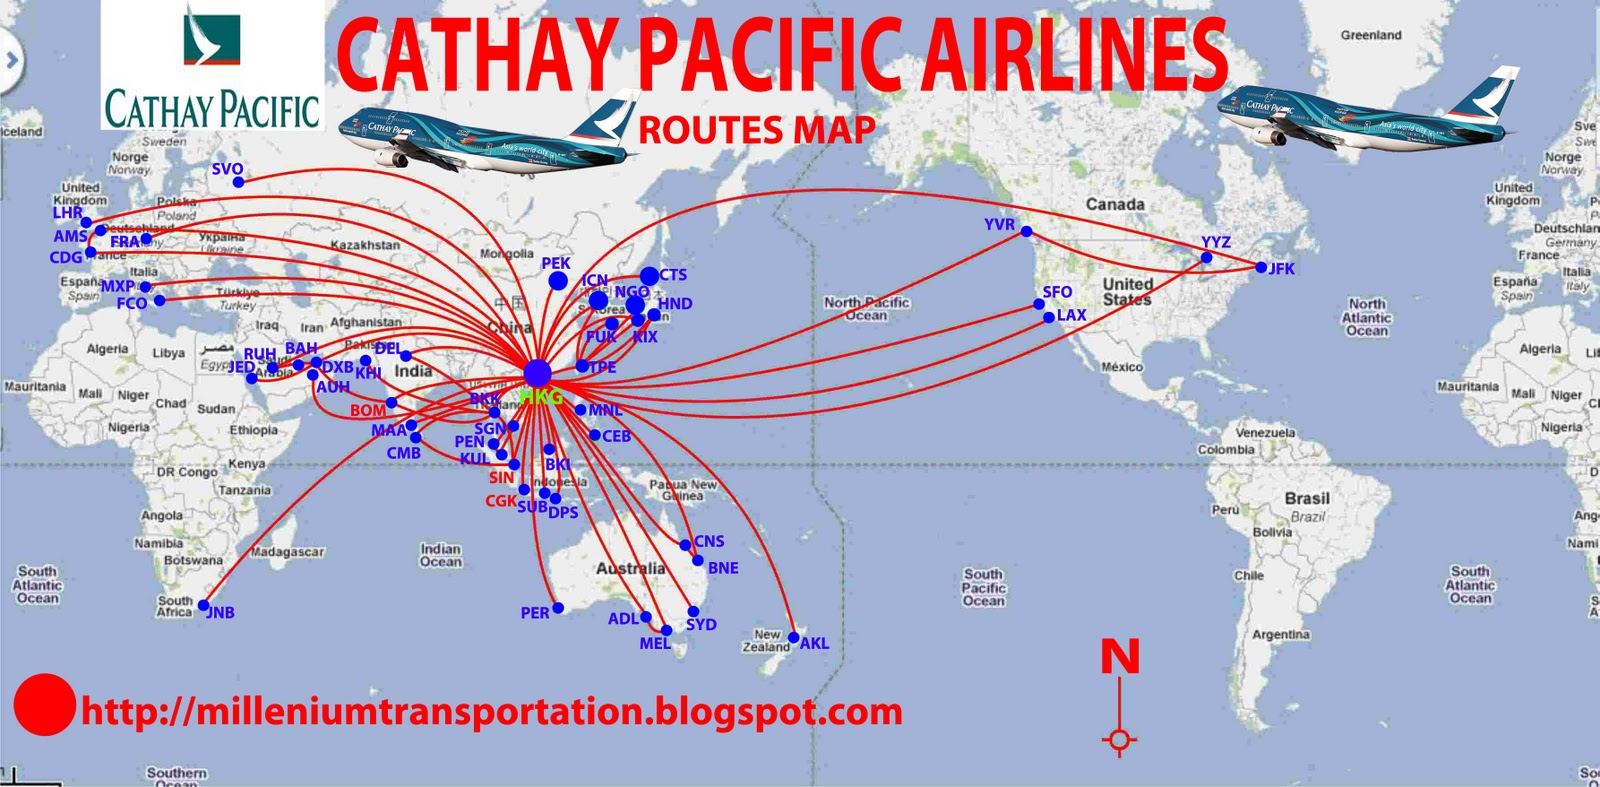 Routes map cathay pacific airways routes map cathay pacific airways routes map publicscrutiny